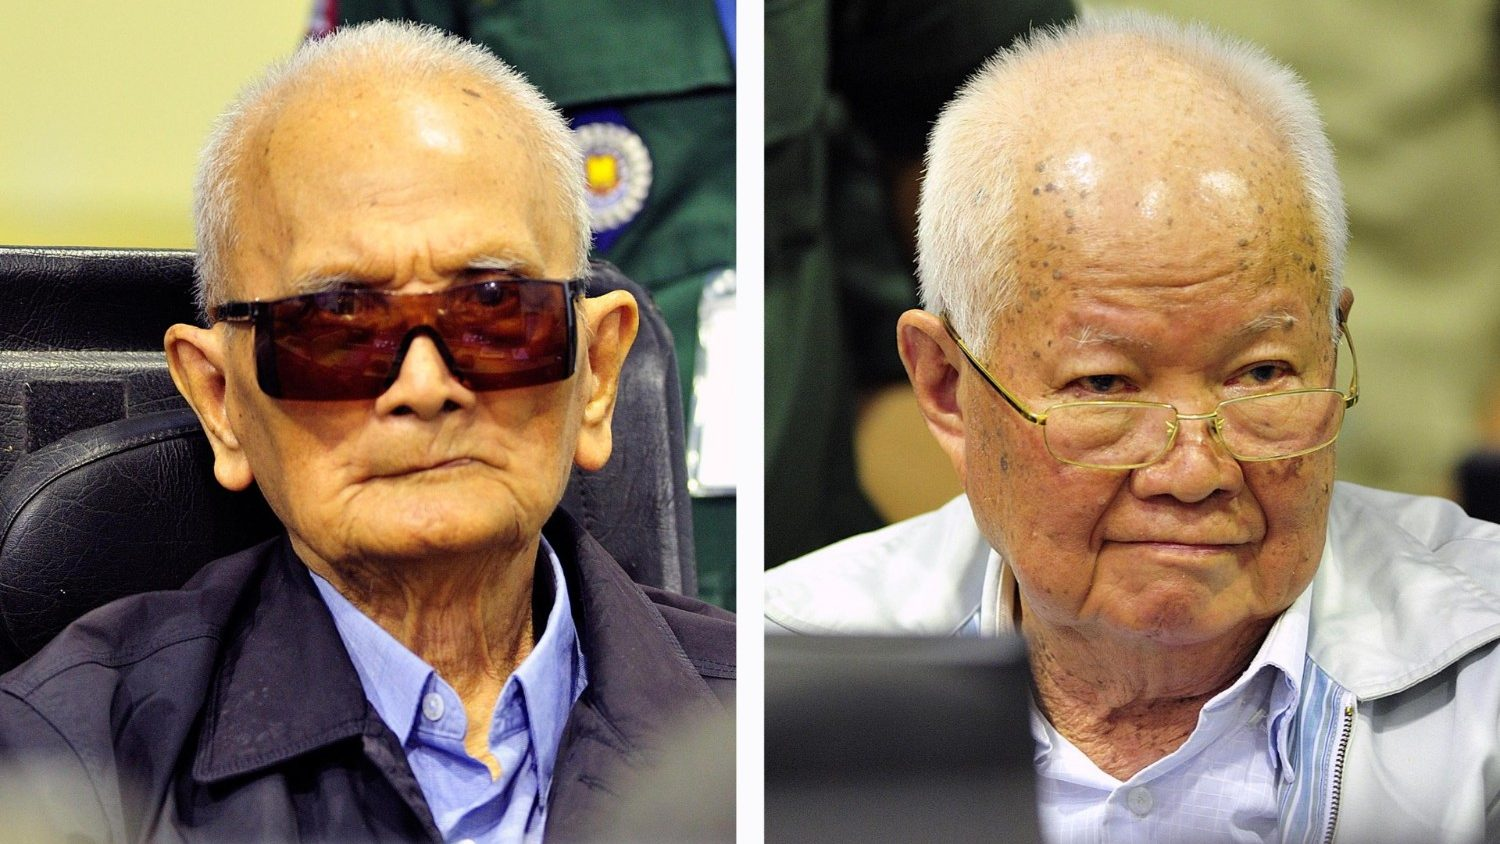 Cambodian former Khmer Rouge leaders found guilty of genocide - Vatican News